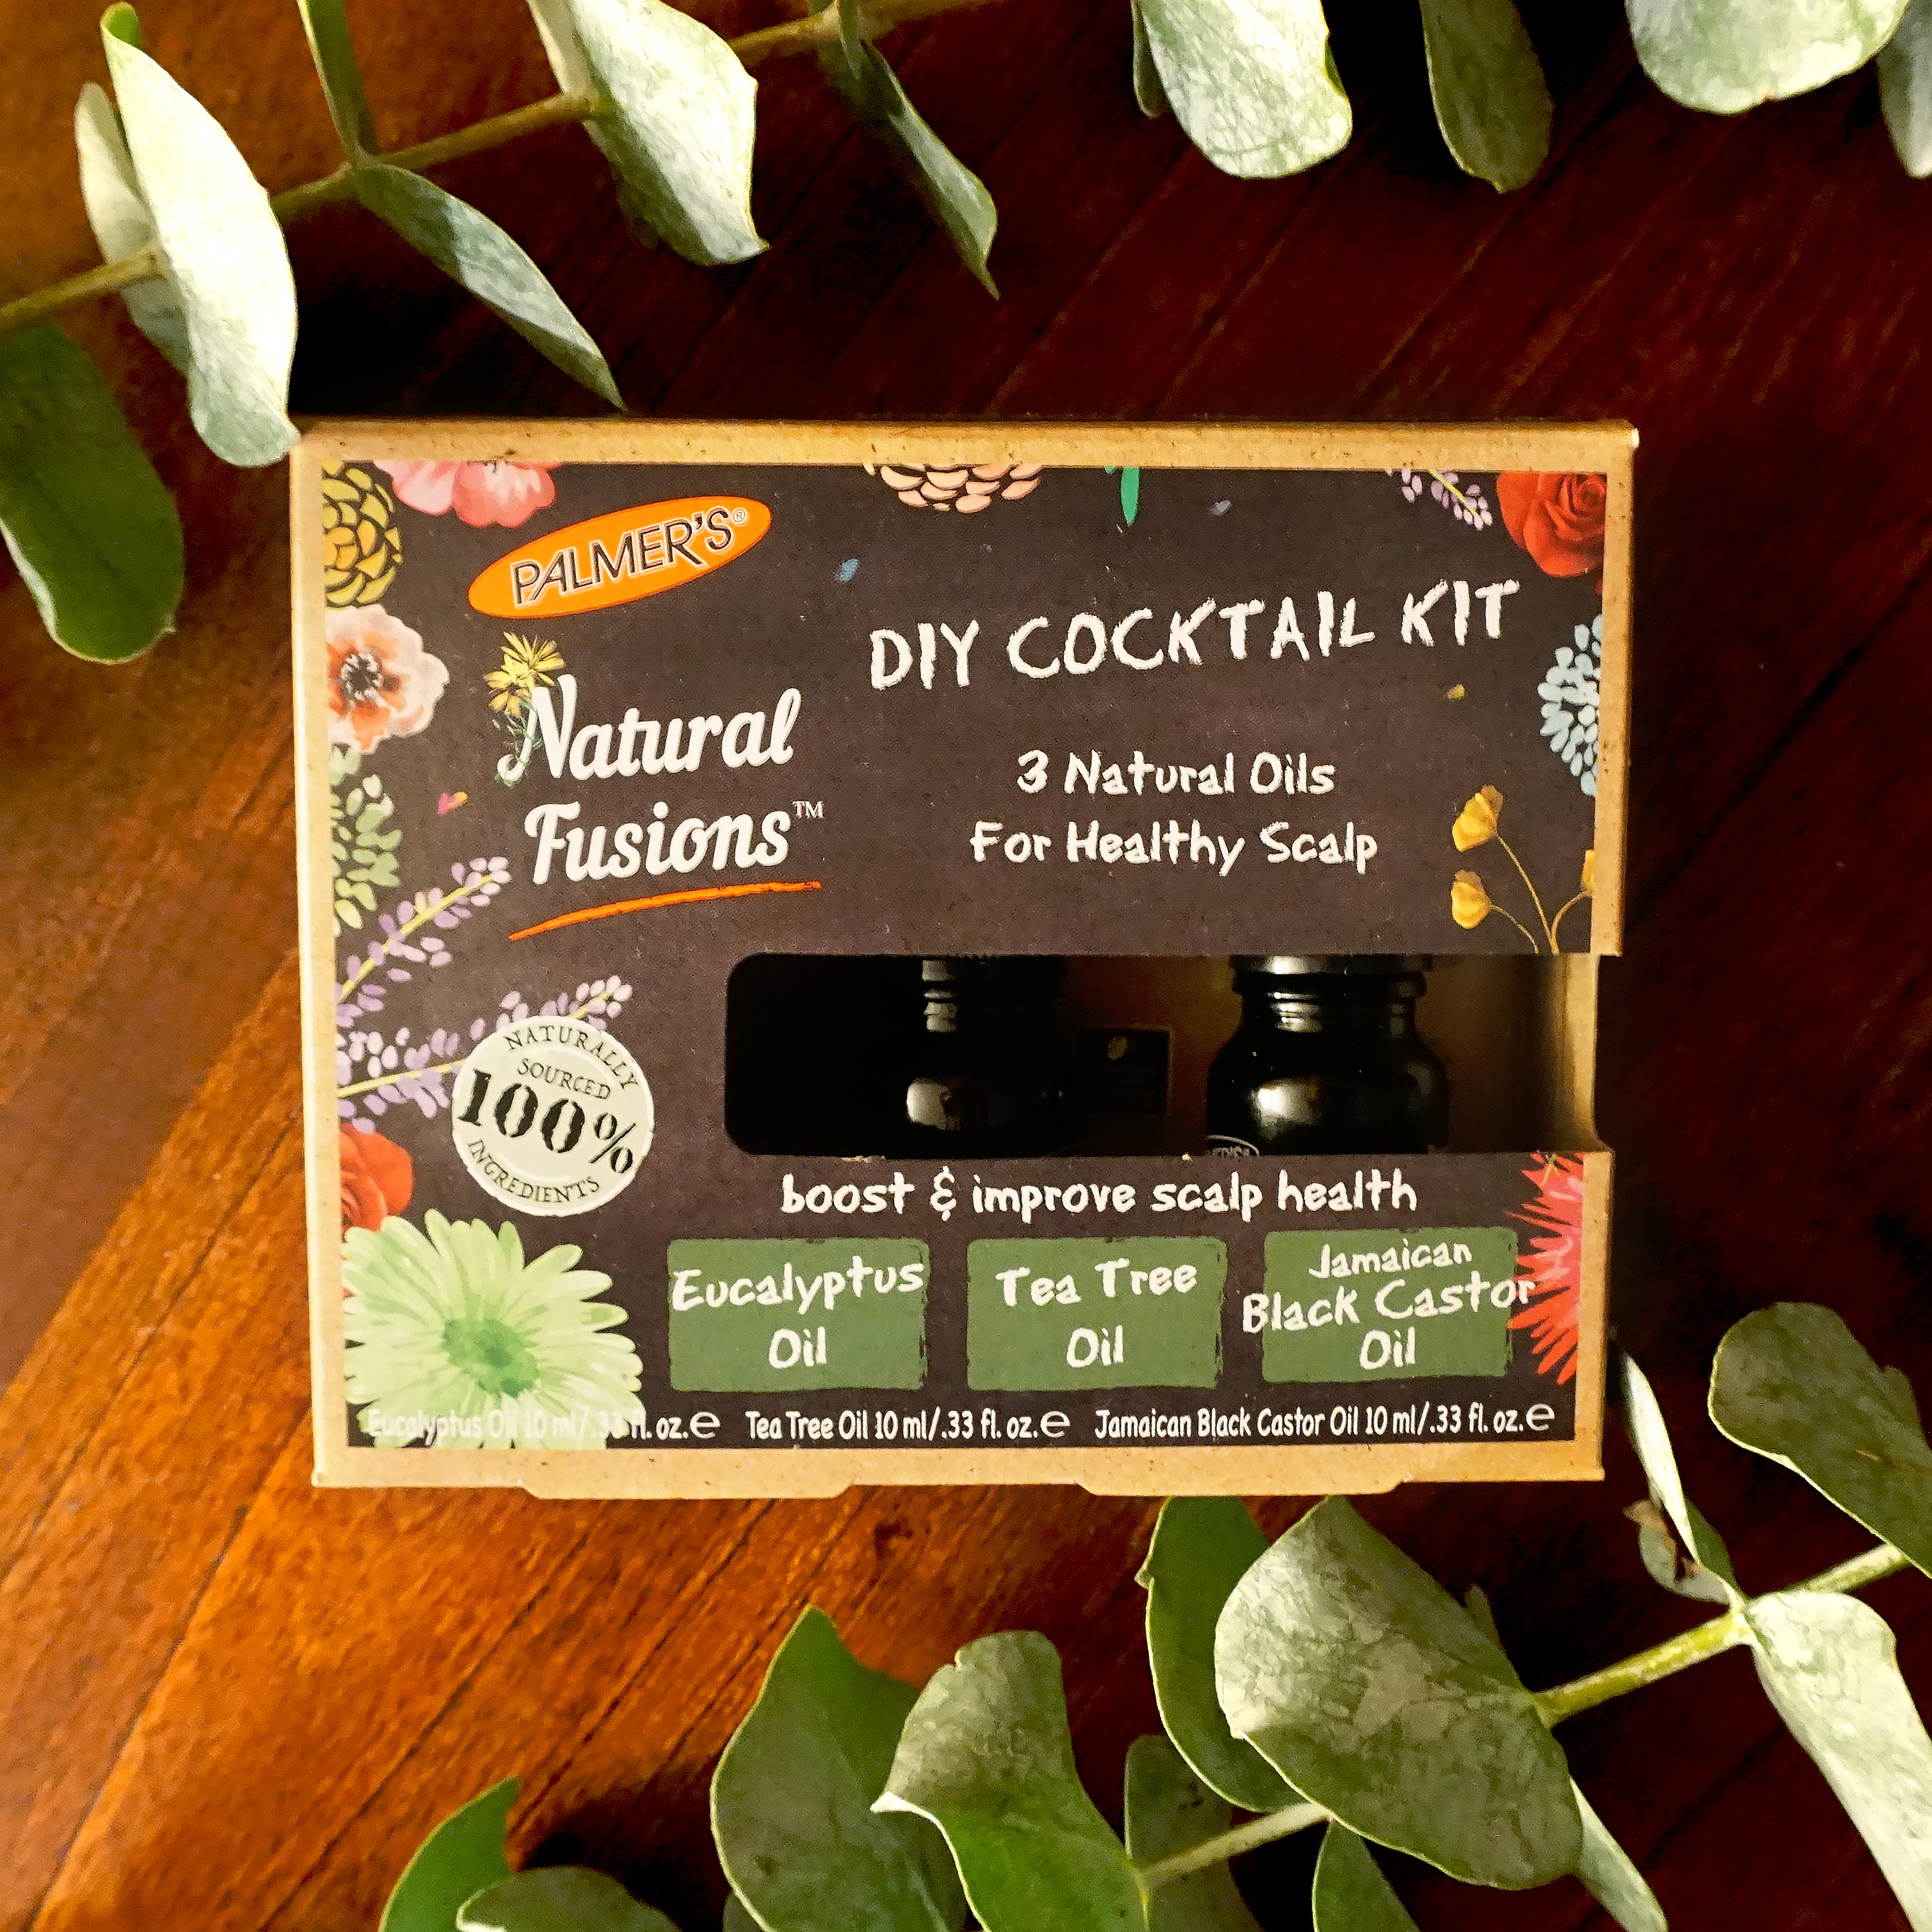 Palmer's Natural Fusions DIY Healthy Scalp Cocktail Kit on a table with flowers